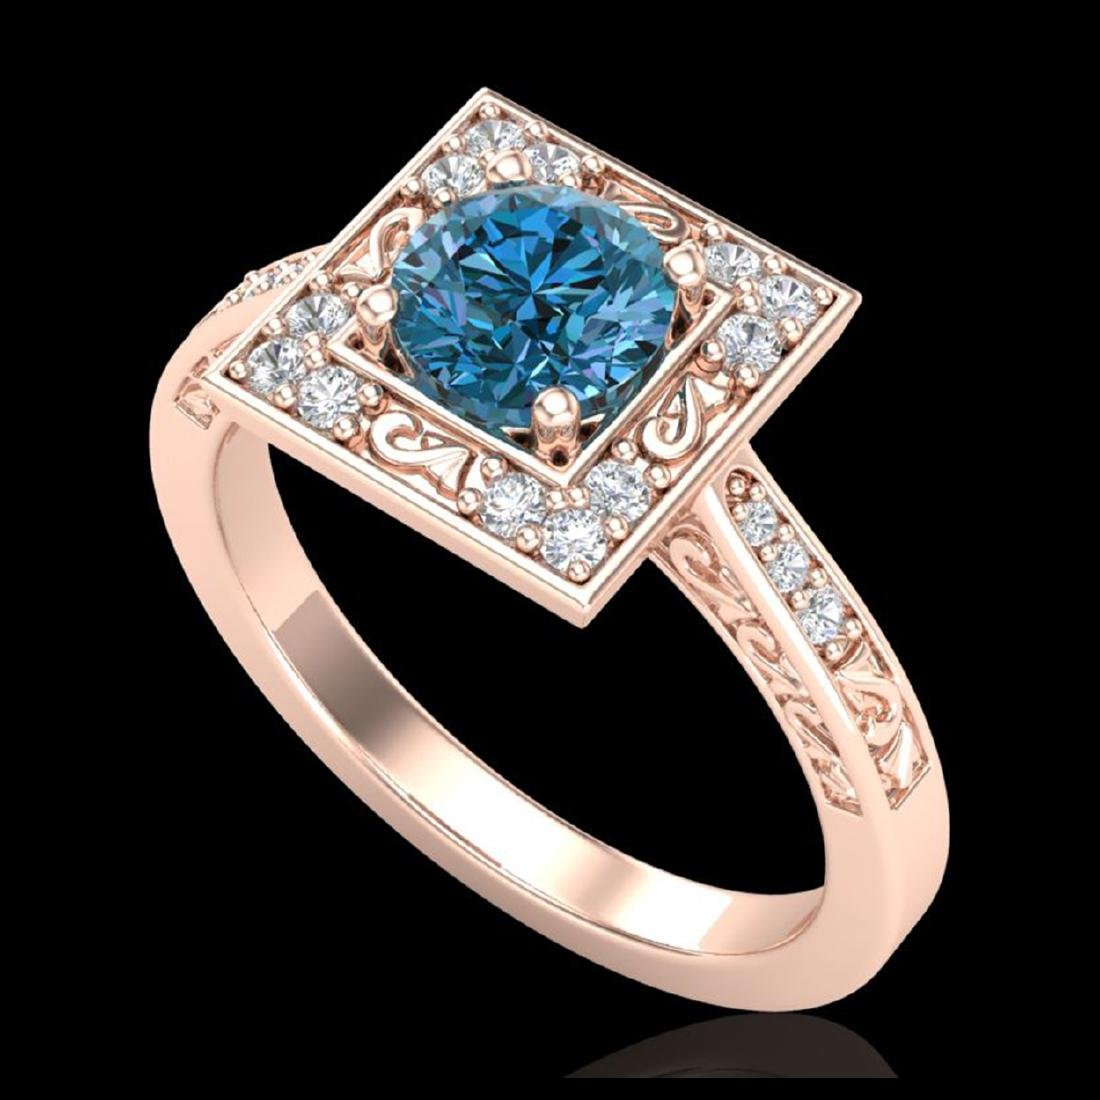 1.1 CTW Intense Blue Diamond Solitaire Engagement Art